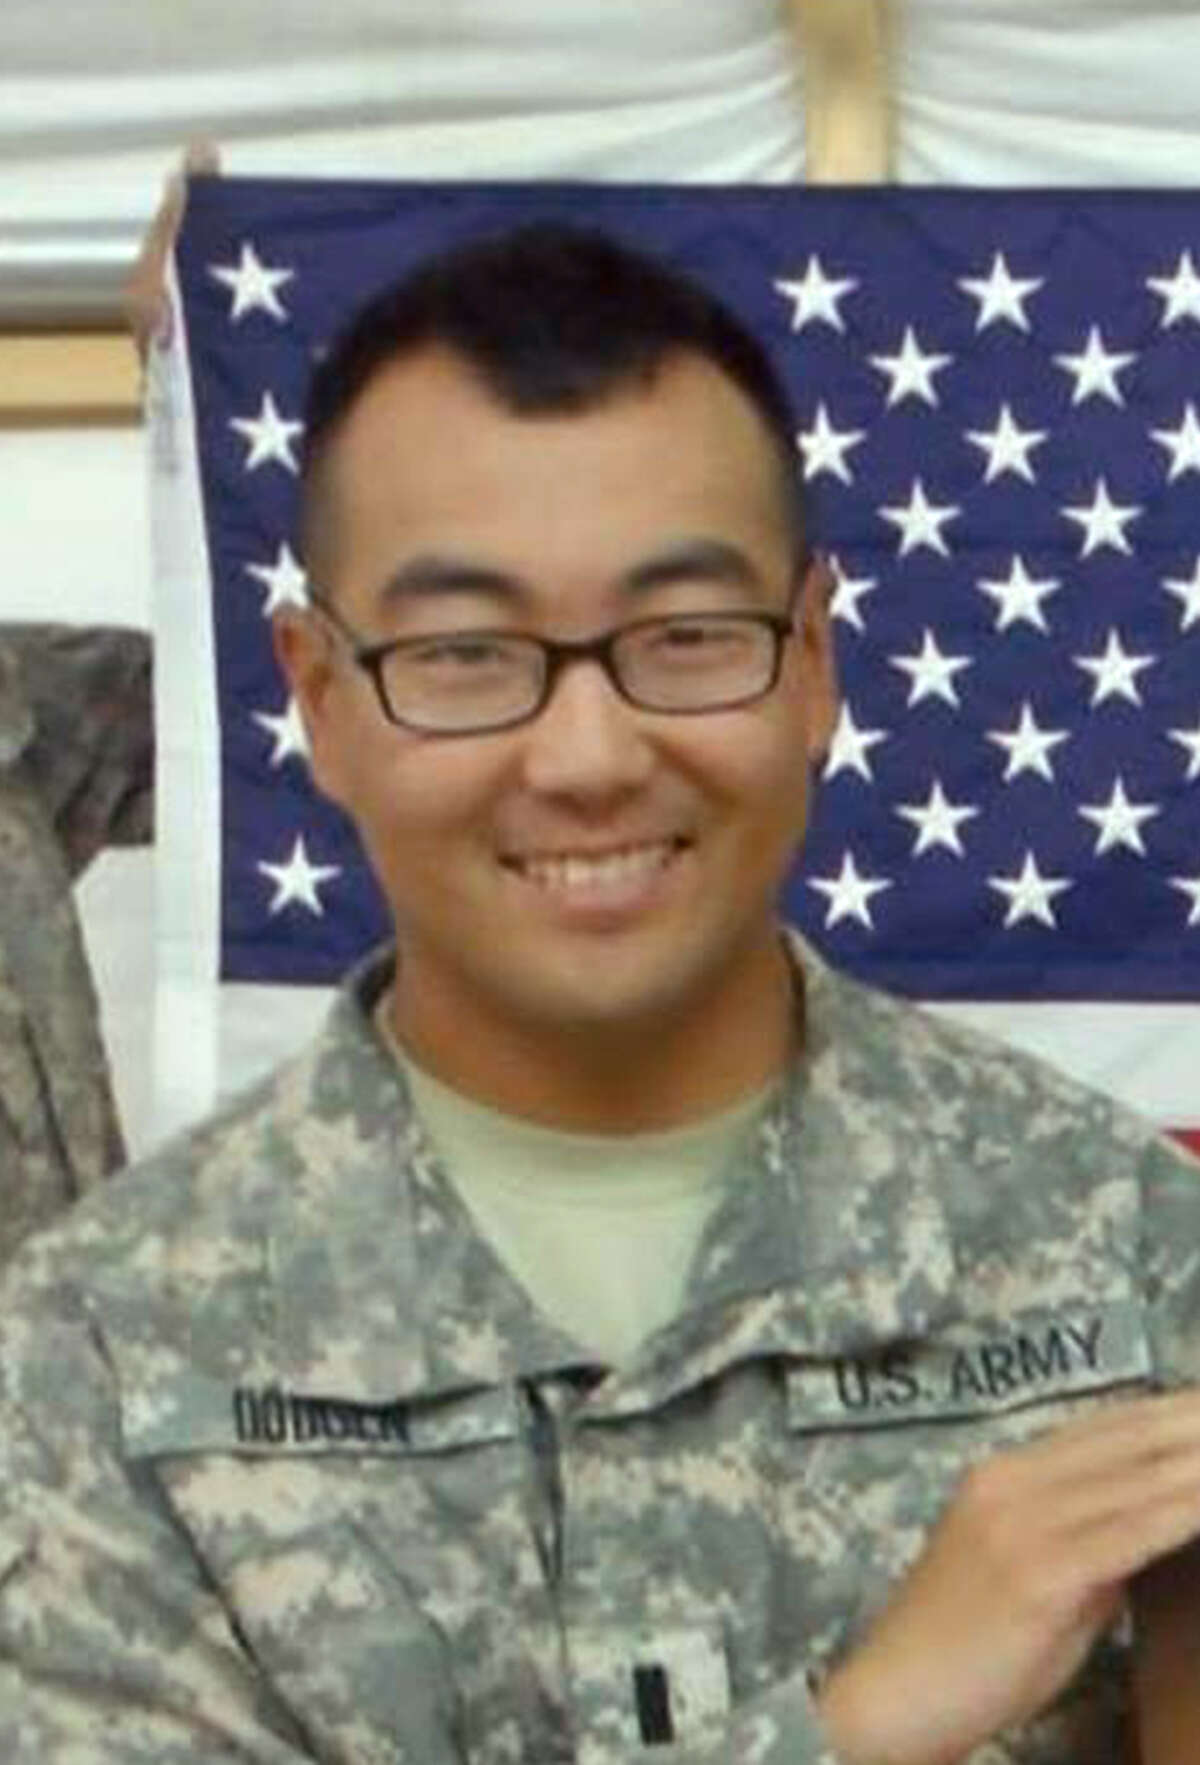 1st Lt. Brenton S. Dodgen died Oct. 14 from an apparent gunshot wound in his off-post residence in Killeen. Dodgen, 28, whose home of record is listed as Universal City, entered active-duty service in January 2011 as a signal officer. He was assigned to the 62nd Expeditionary Signal Battalion, 11th Signal Brigade, Fort Hood, since July 2014. Dodgen deployed in support of Operation Enduring Freedom from June 2011 to June 2012 and in support of Operation Spartan Shield from August 2013 to May 2014. Dodgen's awards and decorations include the Bronze Star Medal, National Defense Service Medal, Afghanistan Campaign Medal with campaign star, Global War on Terrorism Expeditionary Medal, Global War on Terrorism Service Medal, Army Service Ribbon and Overseas Service Ribbon.